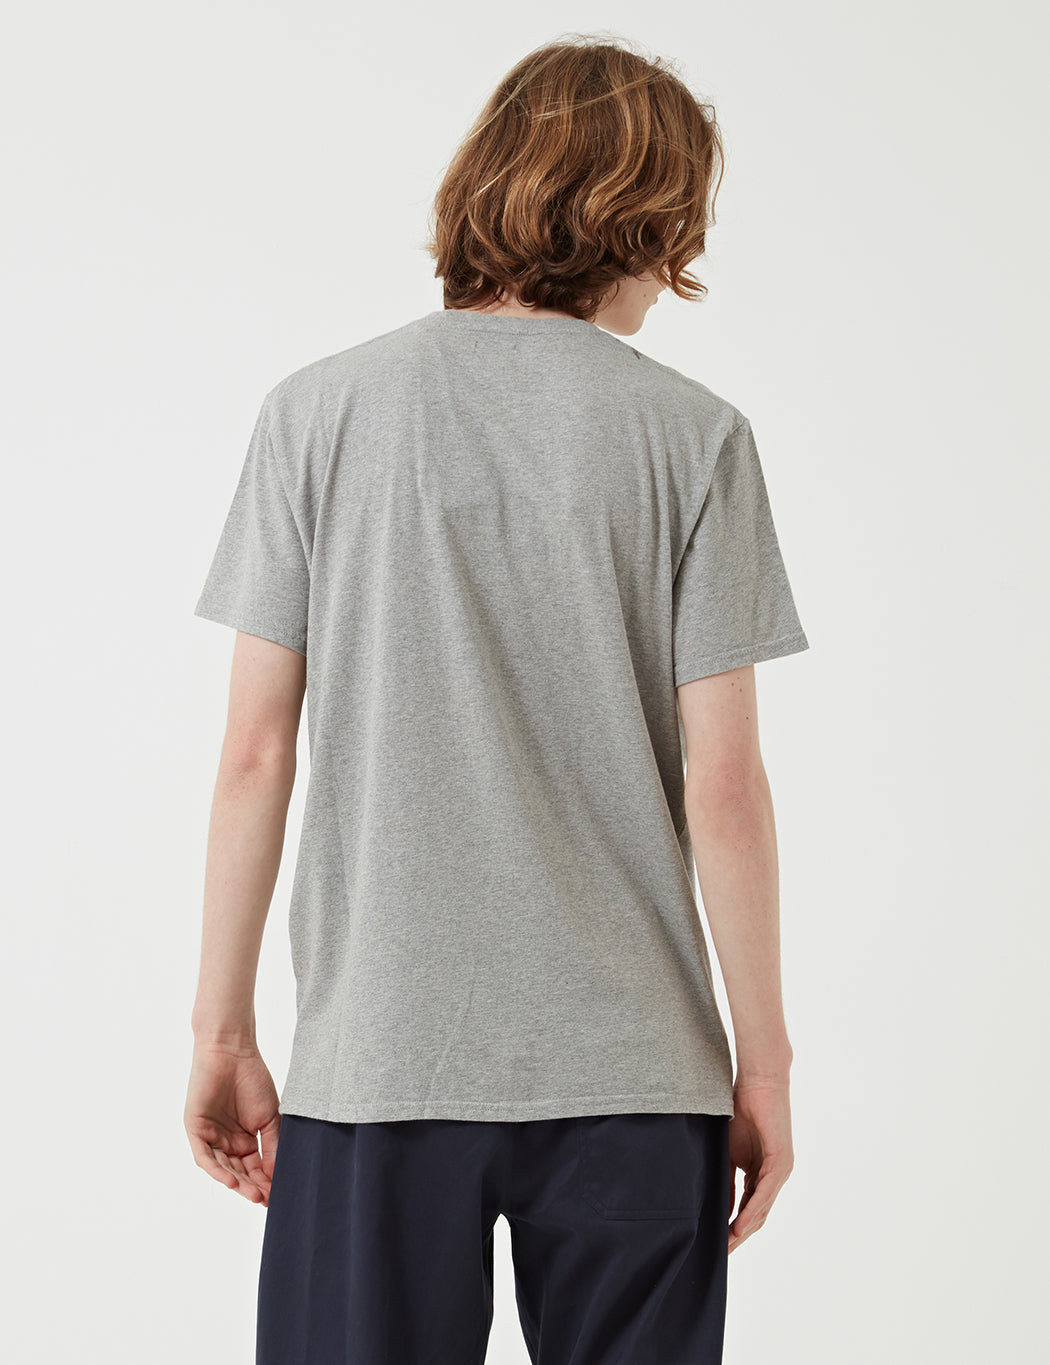 Edwin Pocket Jersey T-Shirt - Grey Marl